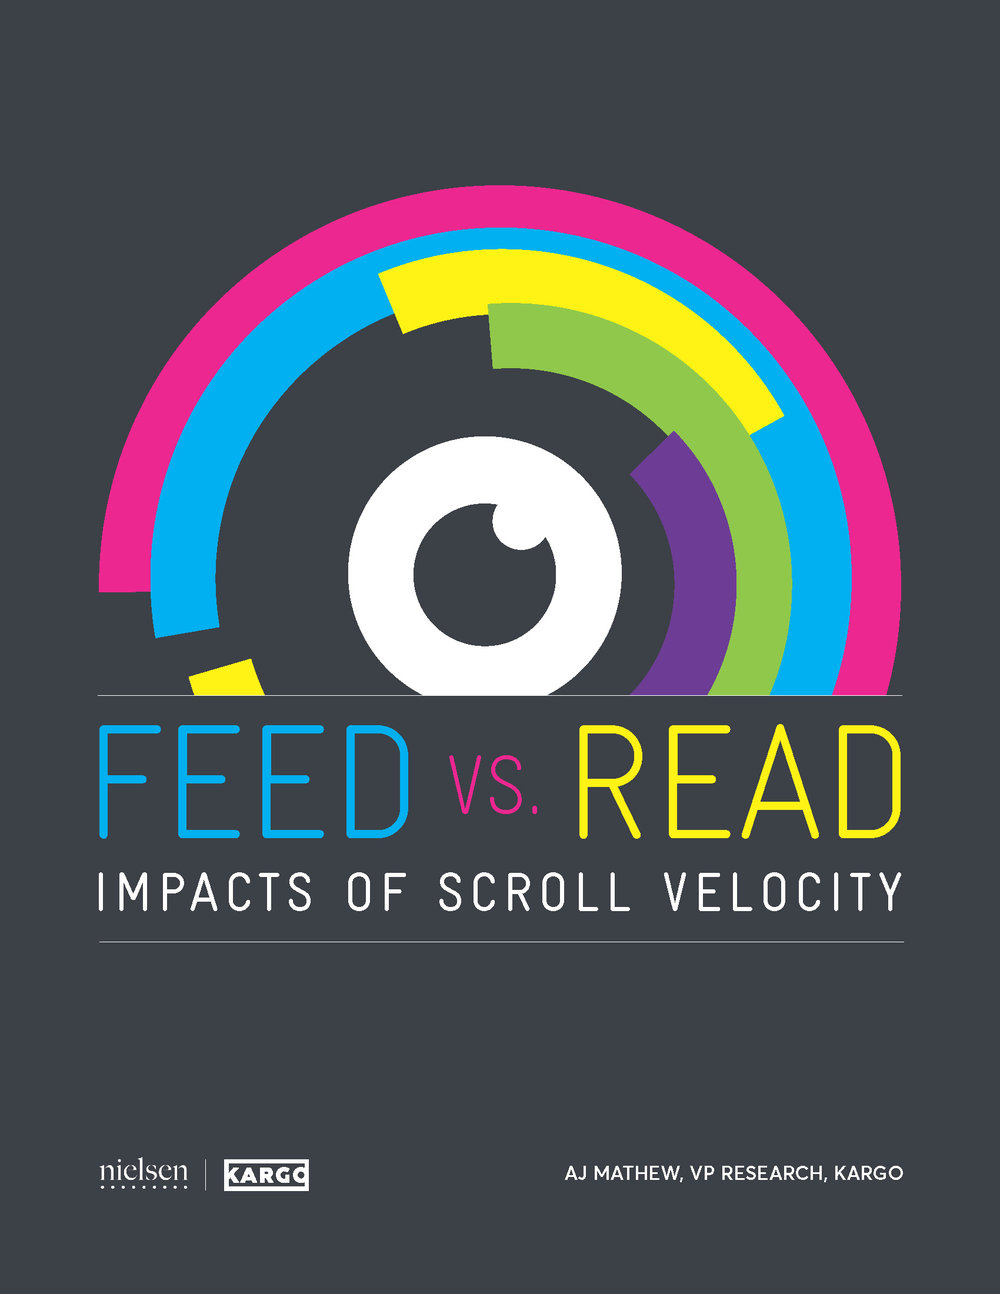 Feed vs Read Study_Page_01.jpeg